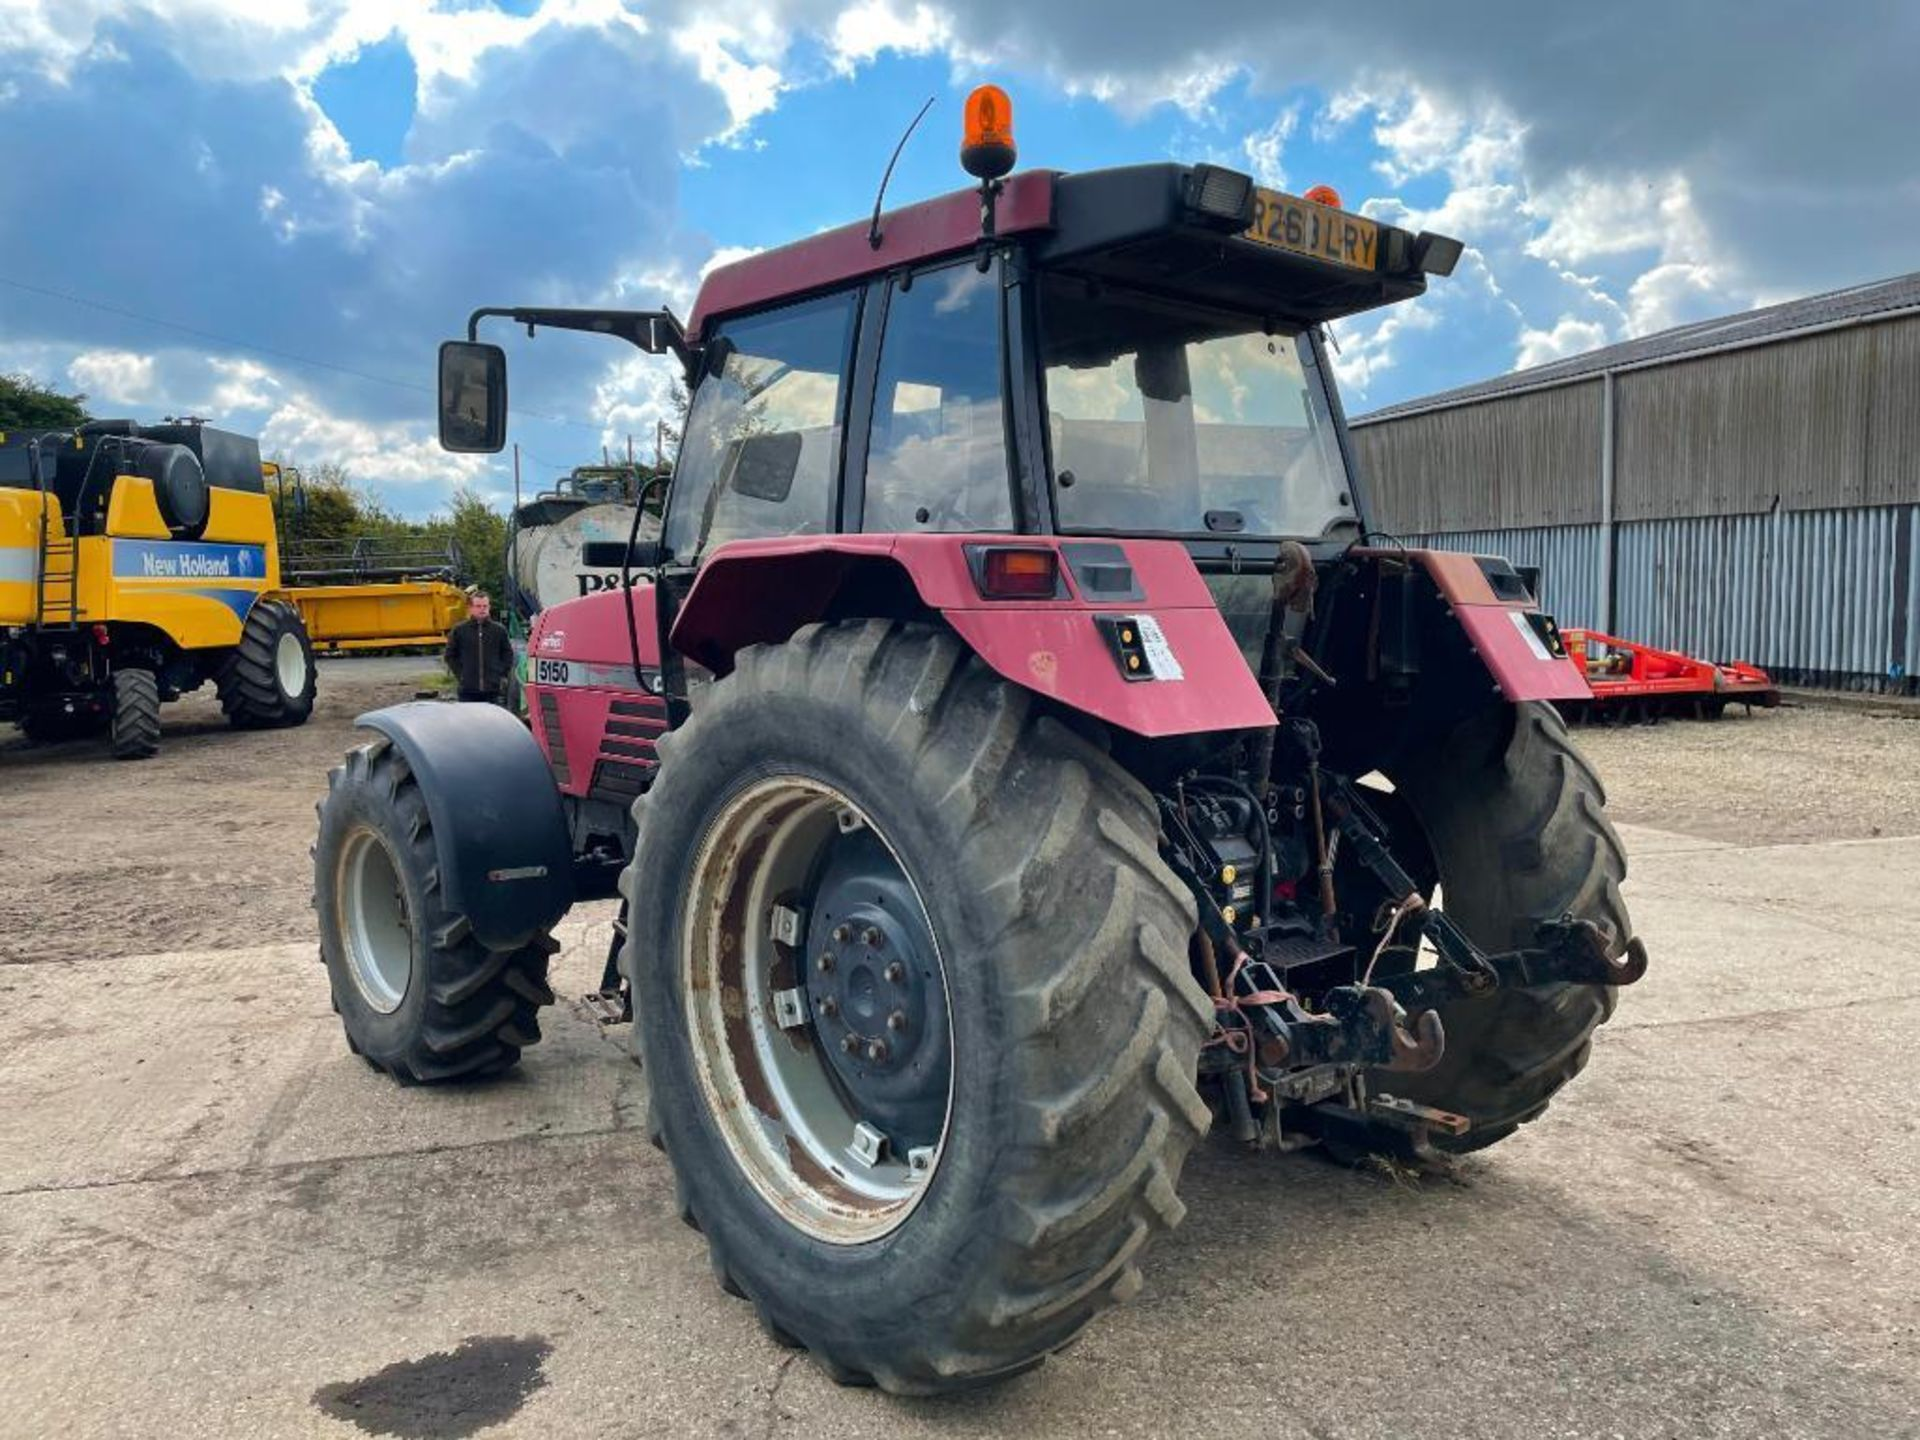 1997 Case IH 5150 Maxxum Plus Powershift 4wd tractor with 2 spools, PUH and front wafer weights on 1 - Image 10 of 13